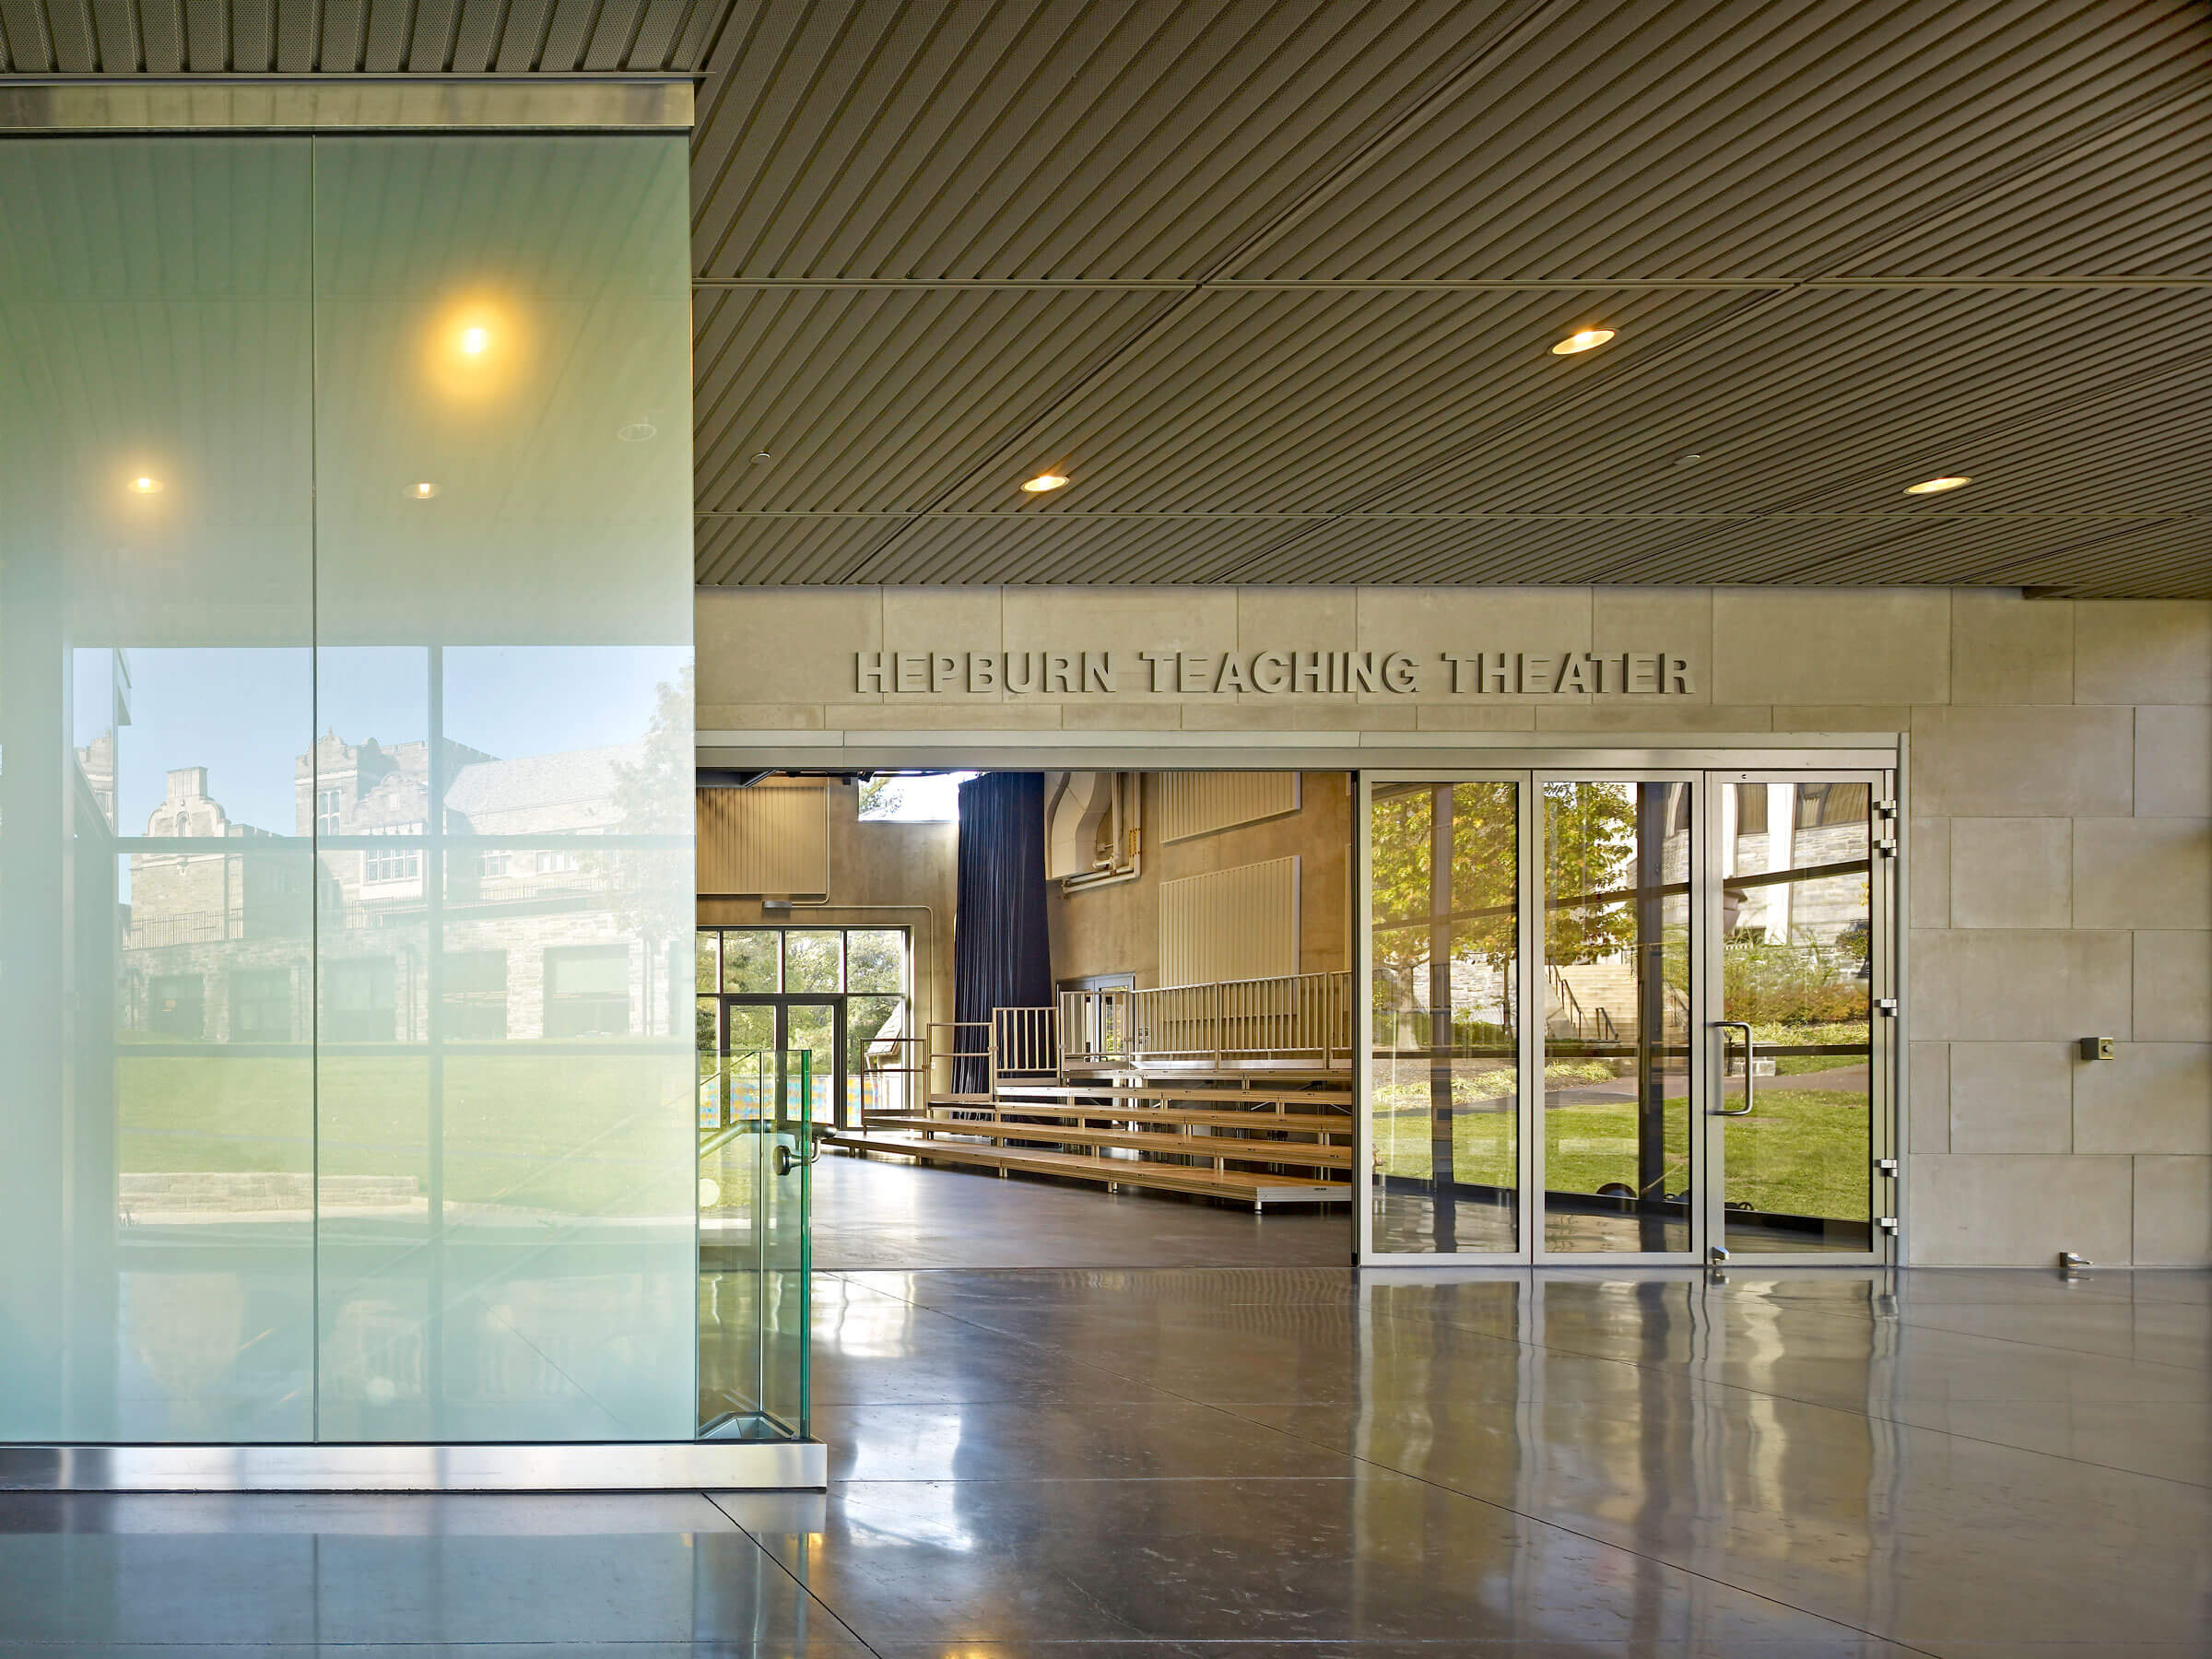 Glass entrance to the Hepburn Teaching Theatre, with natural light reflecting of the polished floor and frosted glass.